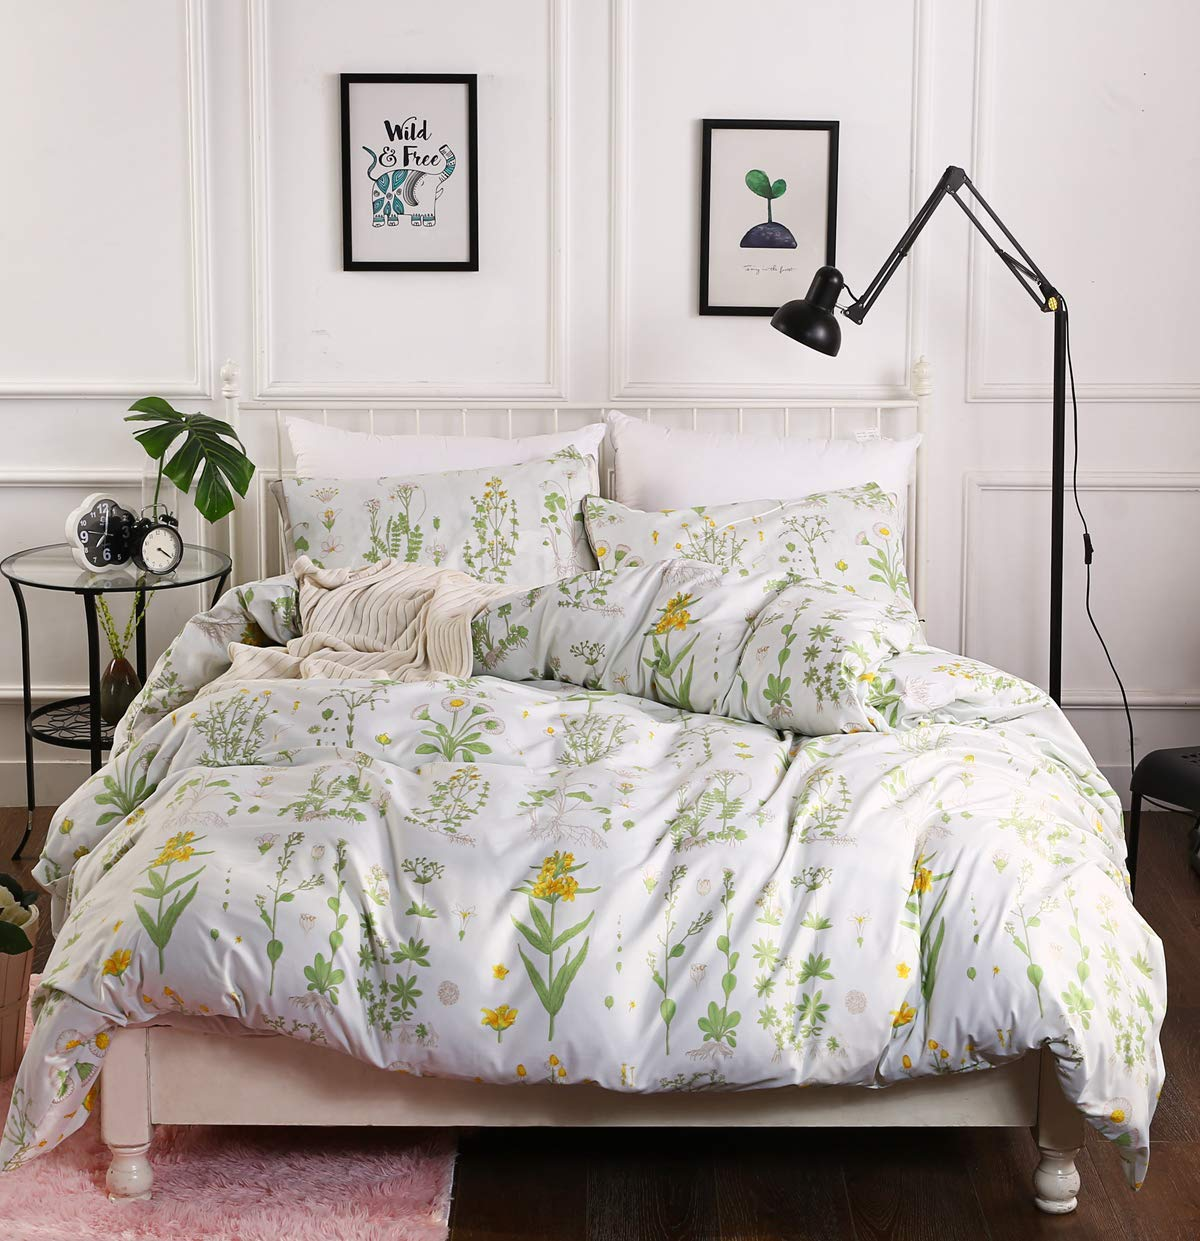 ADASMILE A & S Pastoral Style Floral Plant Canary Yellow Kids Girls 2 Pieces Duvet Cover Set with Zipper Twin (68''x90'')-(1 Duvet Cover + 1 Pillow Shams)-Ultra Soft Hypoallergenic Microfiber by ADASMILE A & S